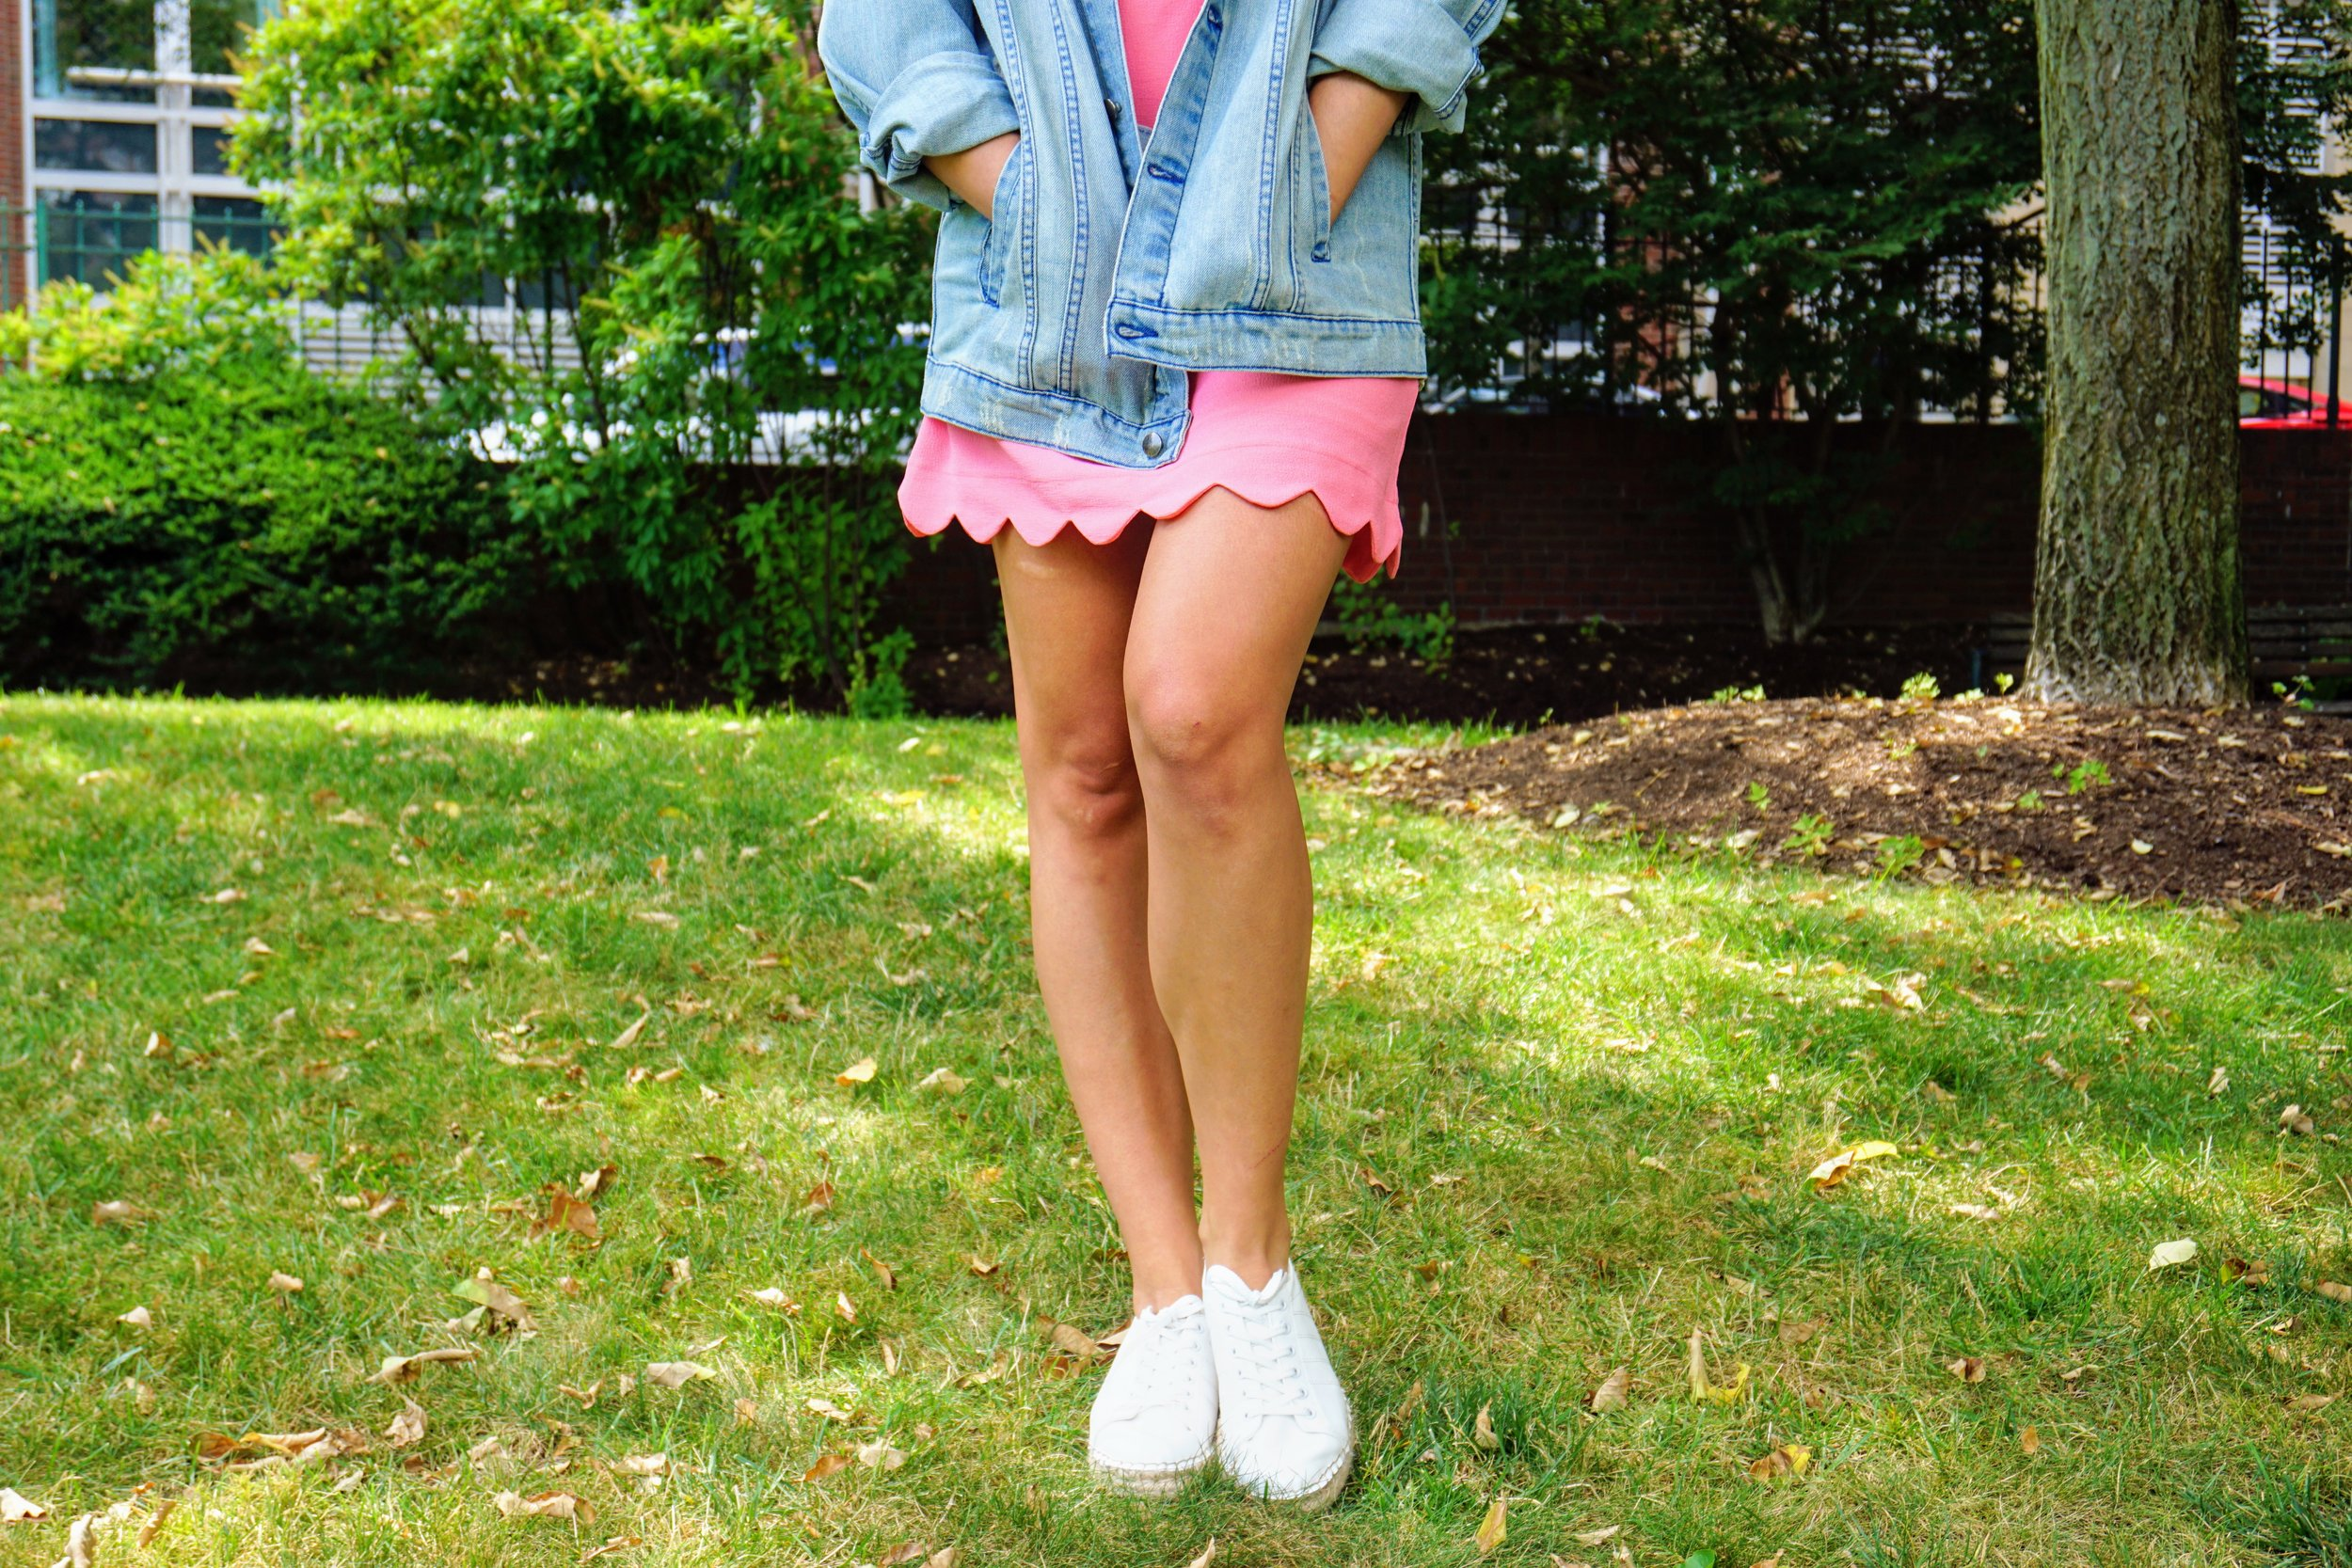 Outfit details: pink dress, oversized denim jacket, and white sneakers.